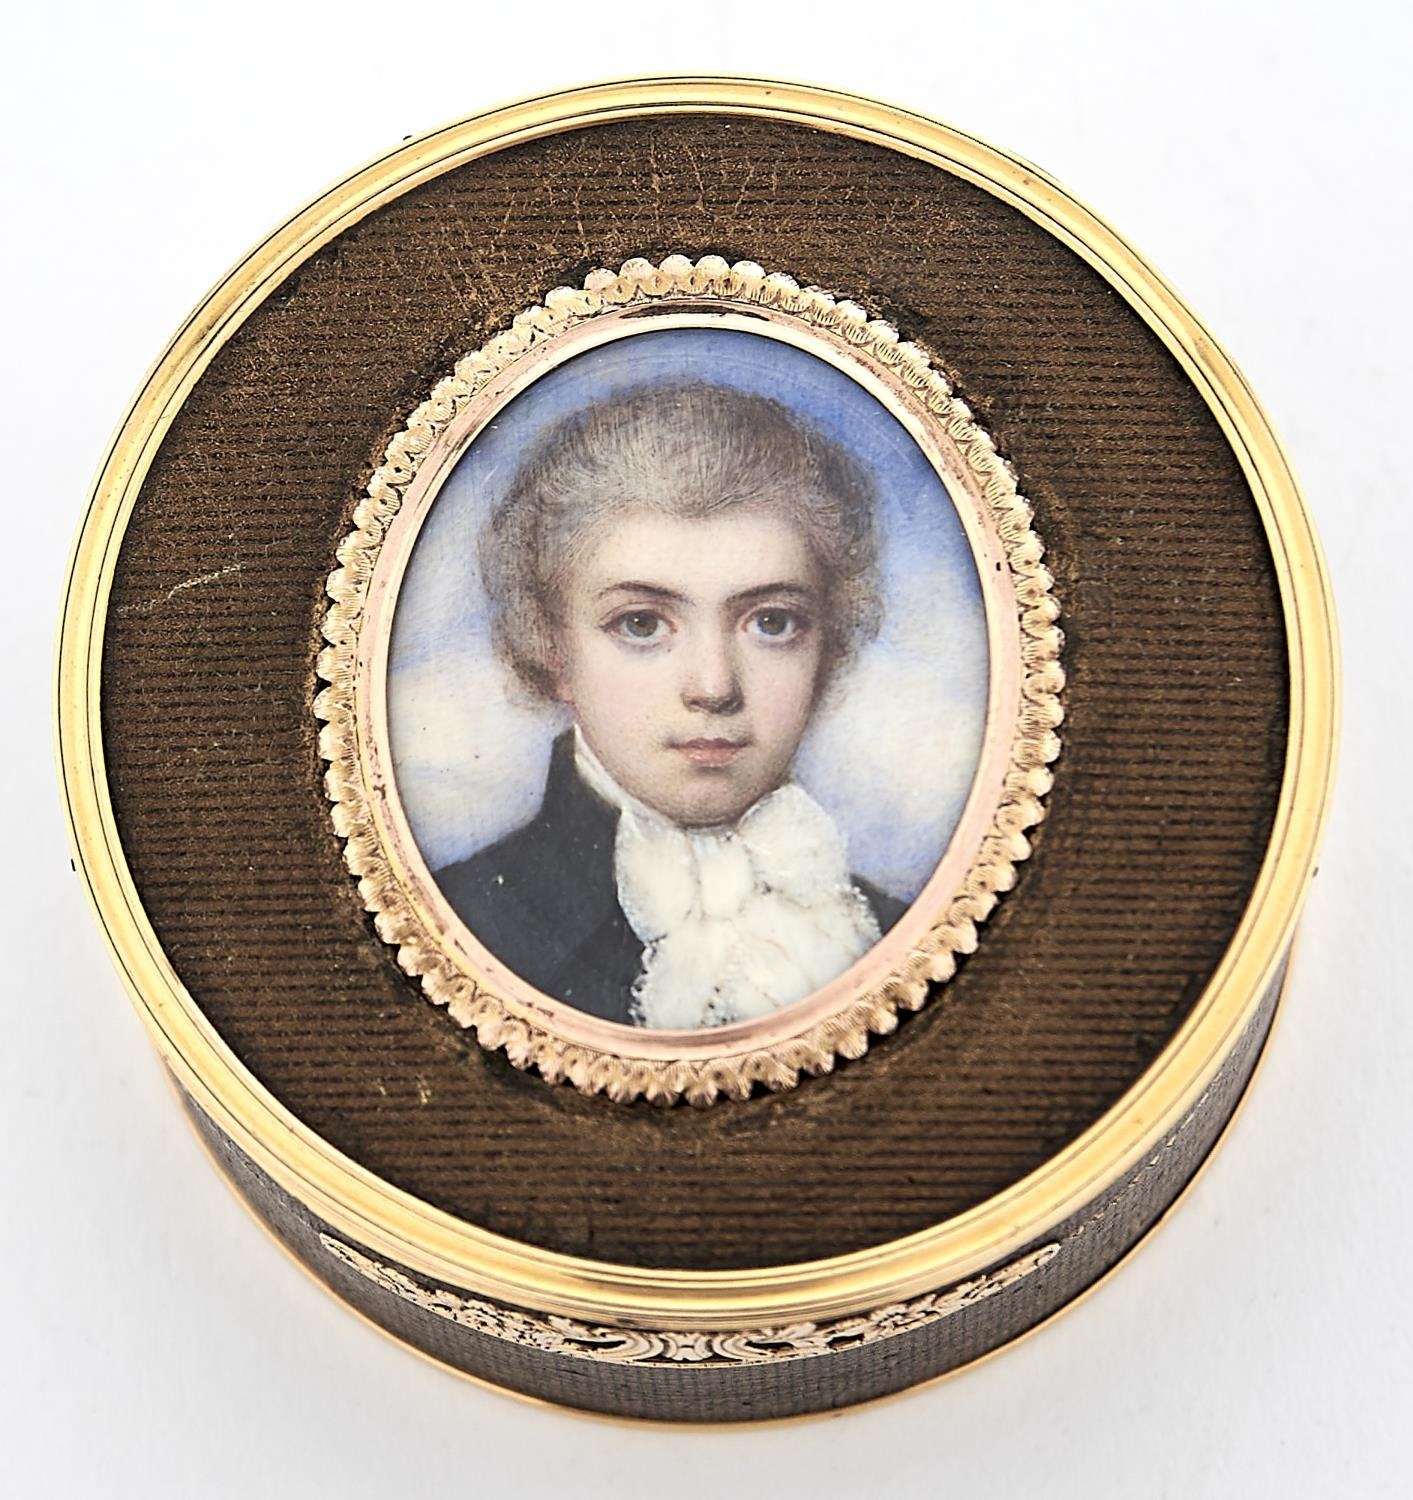 A LOUIS XVI GOLD MOUNTED COMPOSITION BOITE-A-MINIATURE, THE BLACK AND GOLD DECORATED BOX INSET WITH